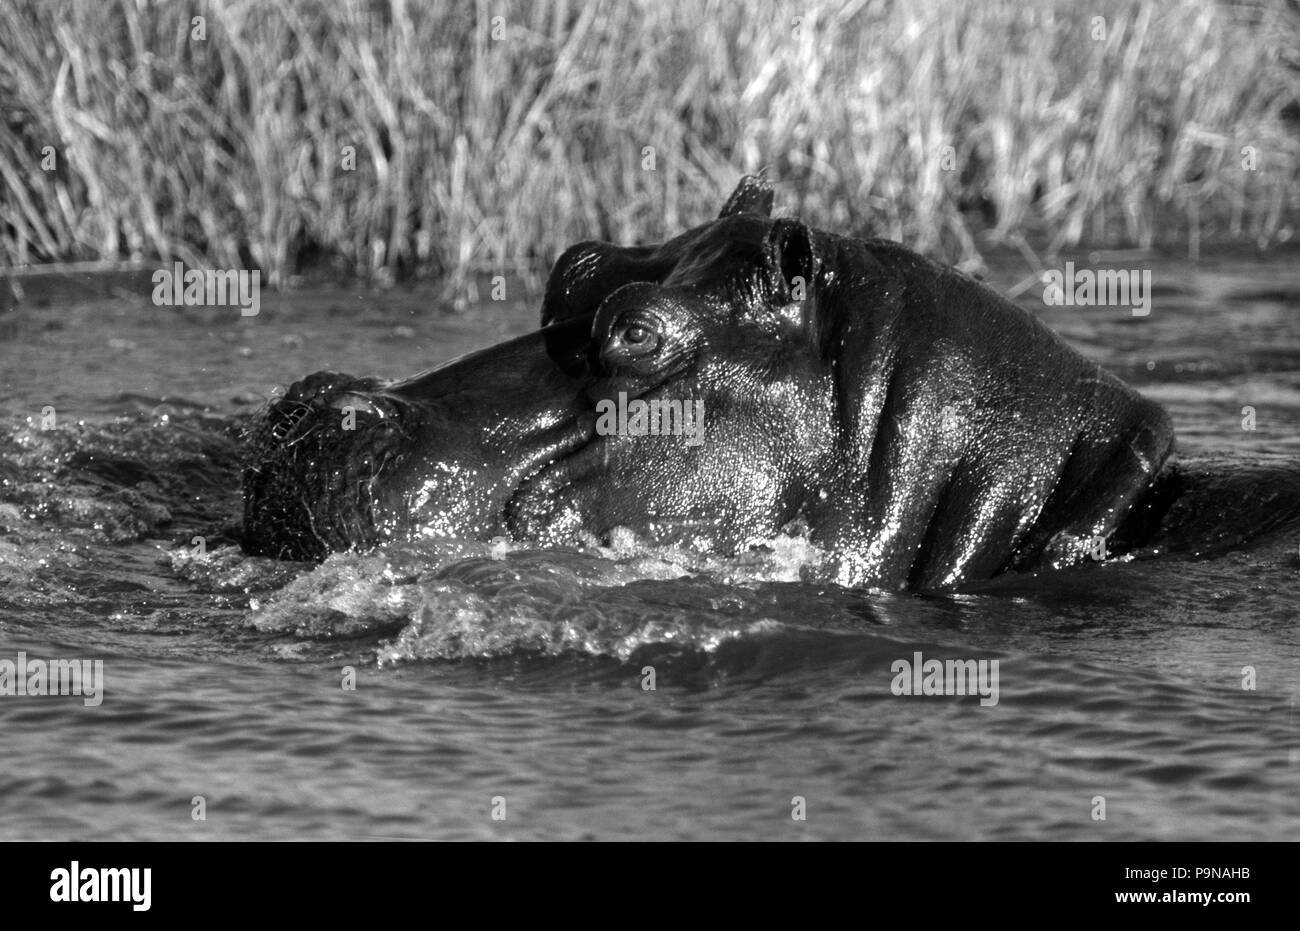 HIPPOS (Hippopatamus Amphibius) are very territorial & spend most of the day in the water - MOREMI GAME RESERVE - Stock Image